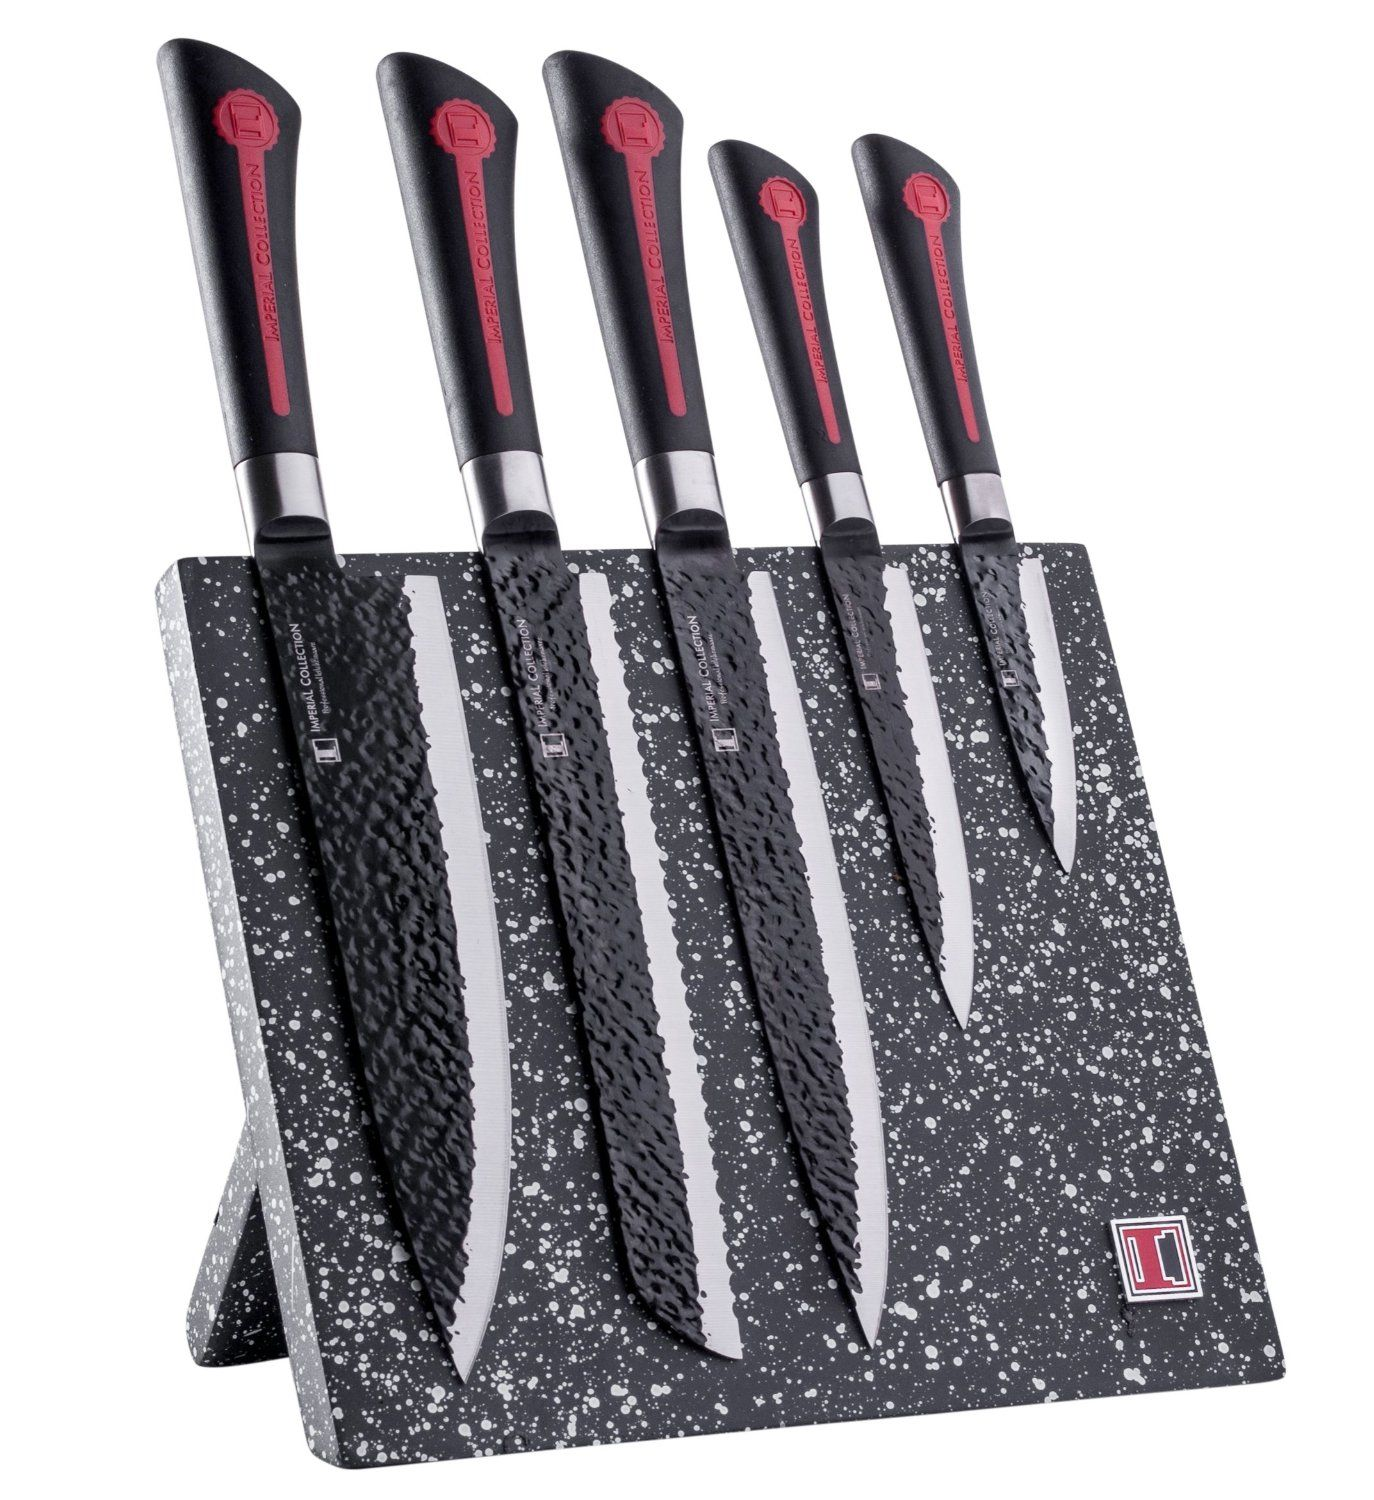 imperial collection 6 piece knife set including